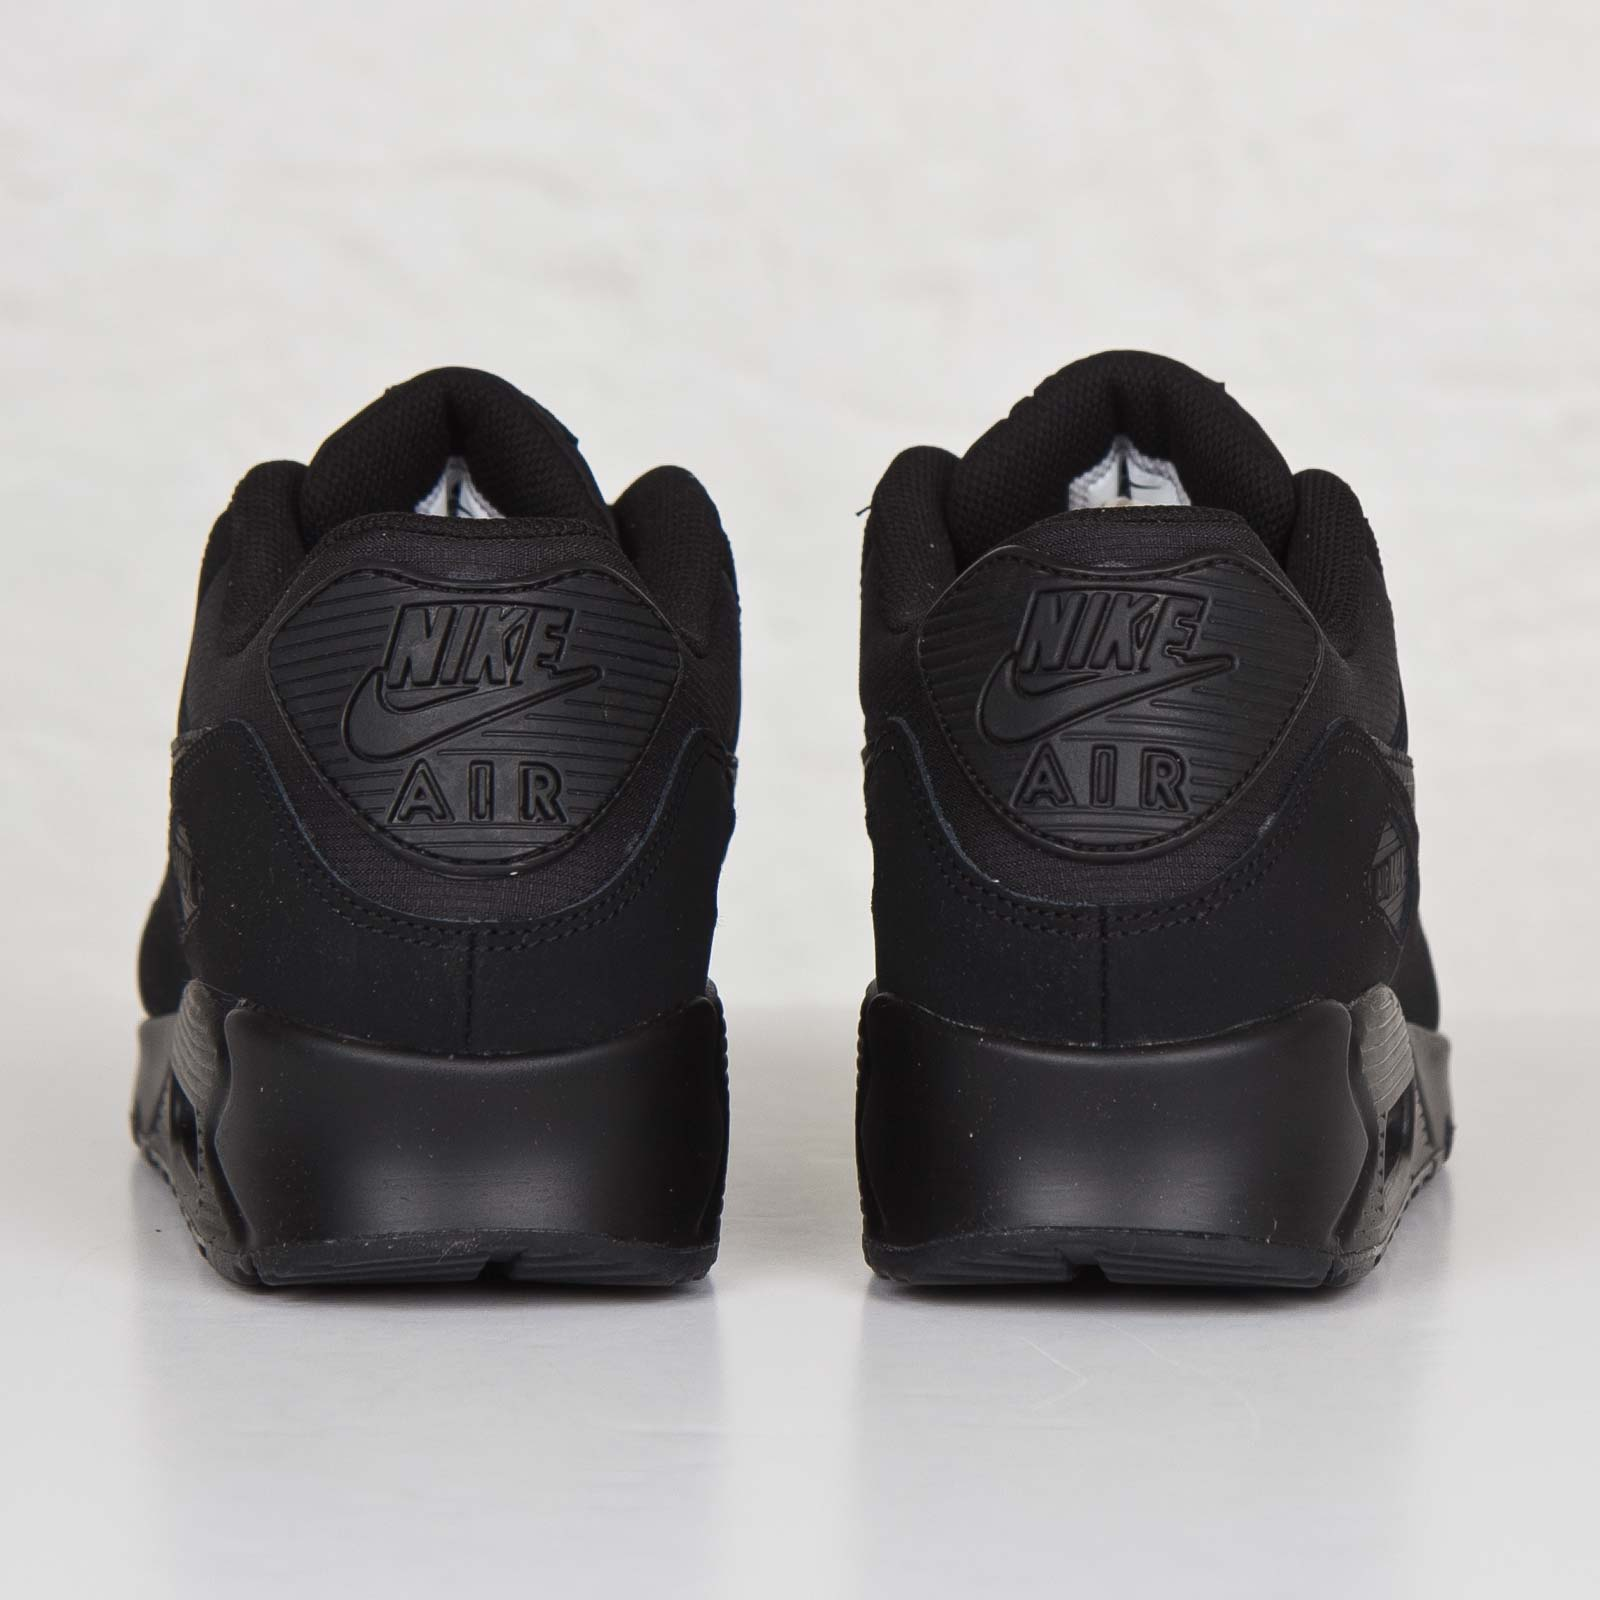 finest selection ab318 a904e Nike Air Max 90 Essential - 537384-046 - Sneakersnstuff   sneakers   streetwear  online since 1999